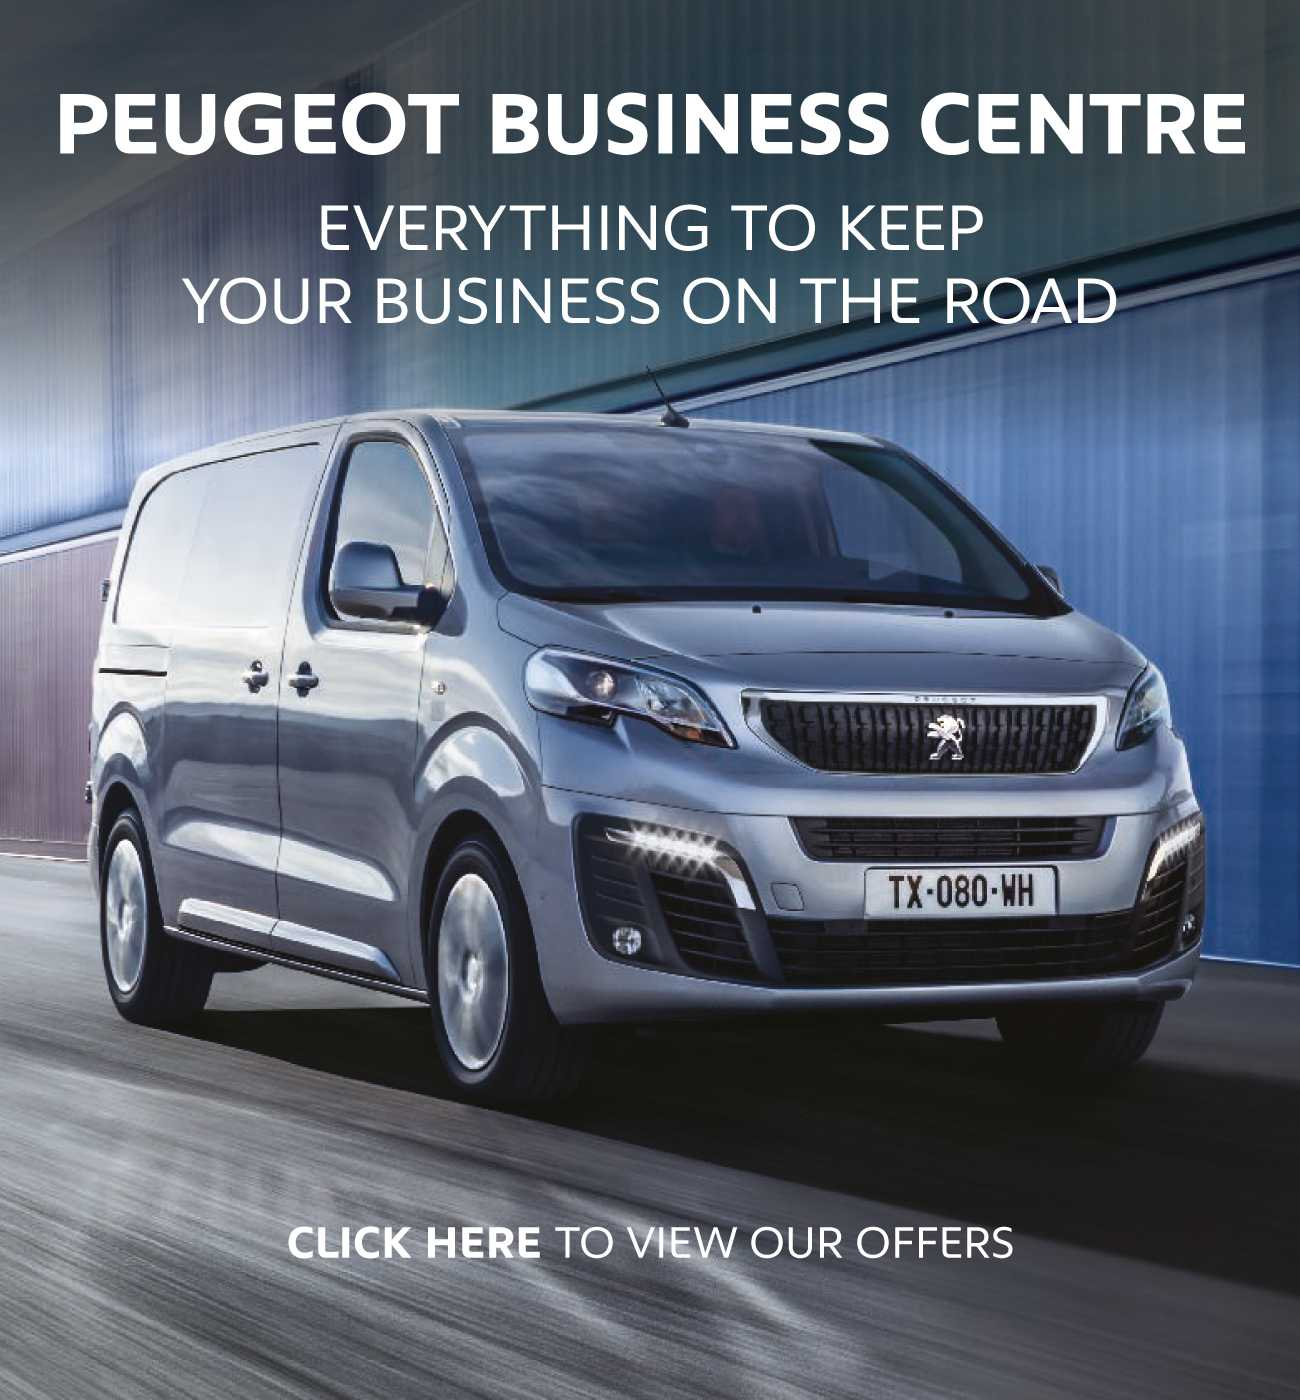 Peugeot Business Centre BB